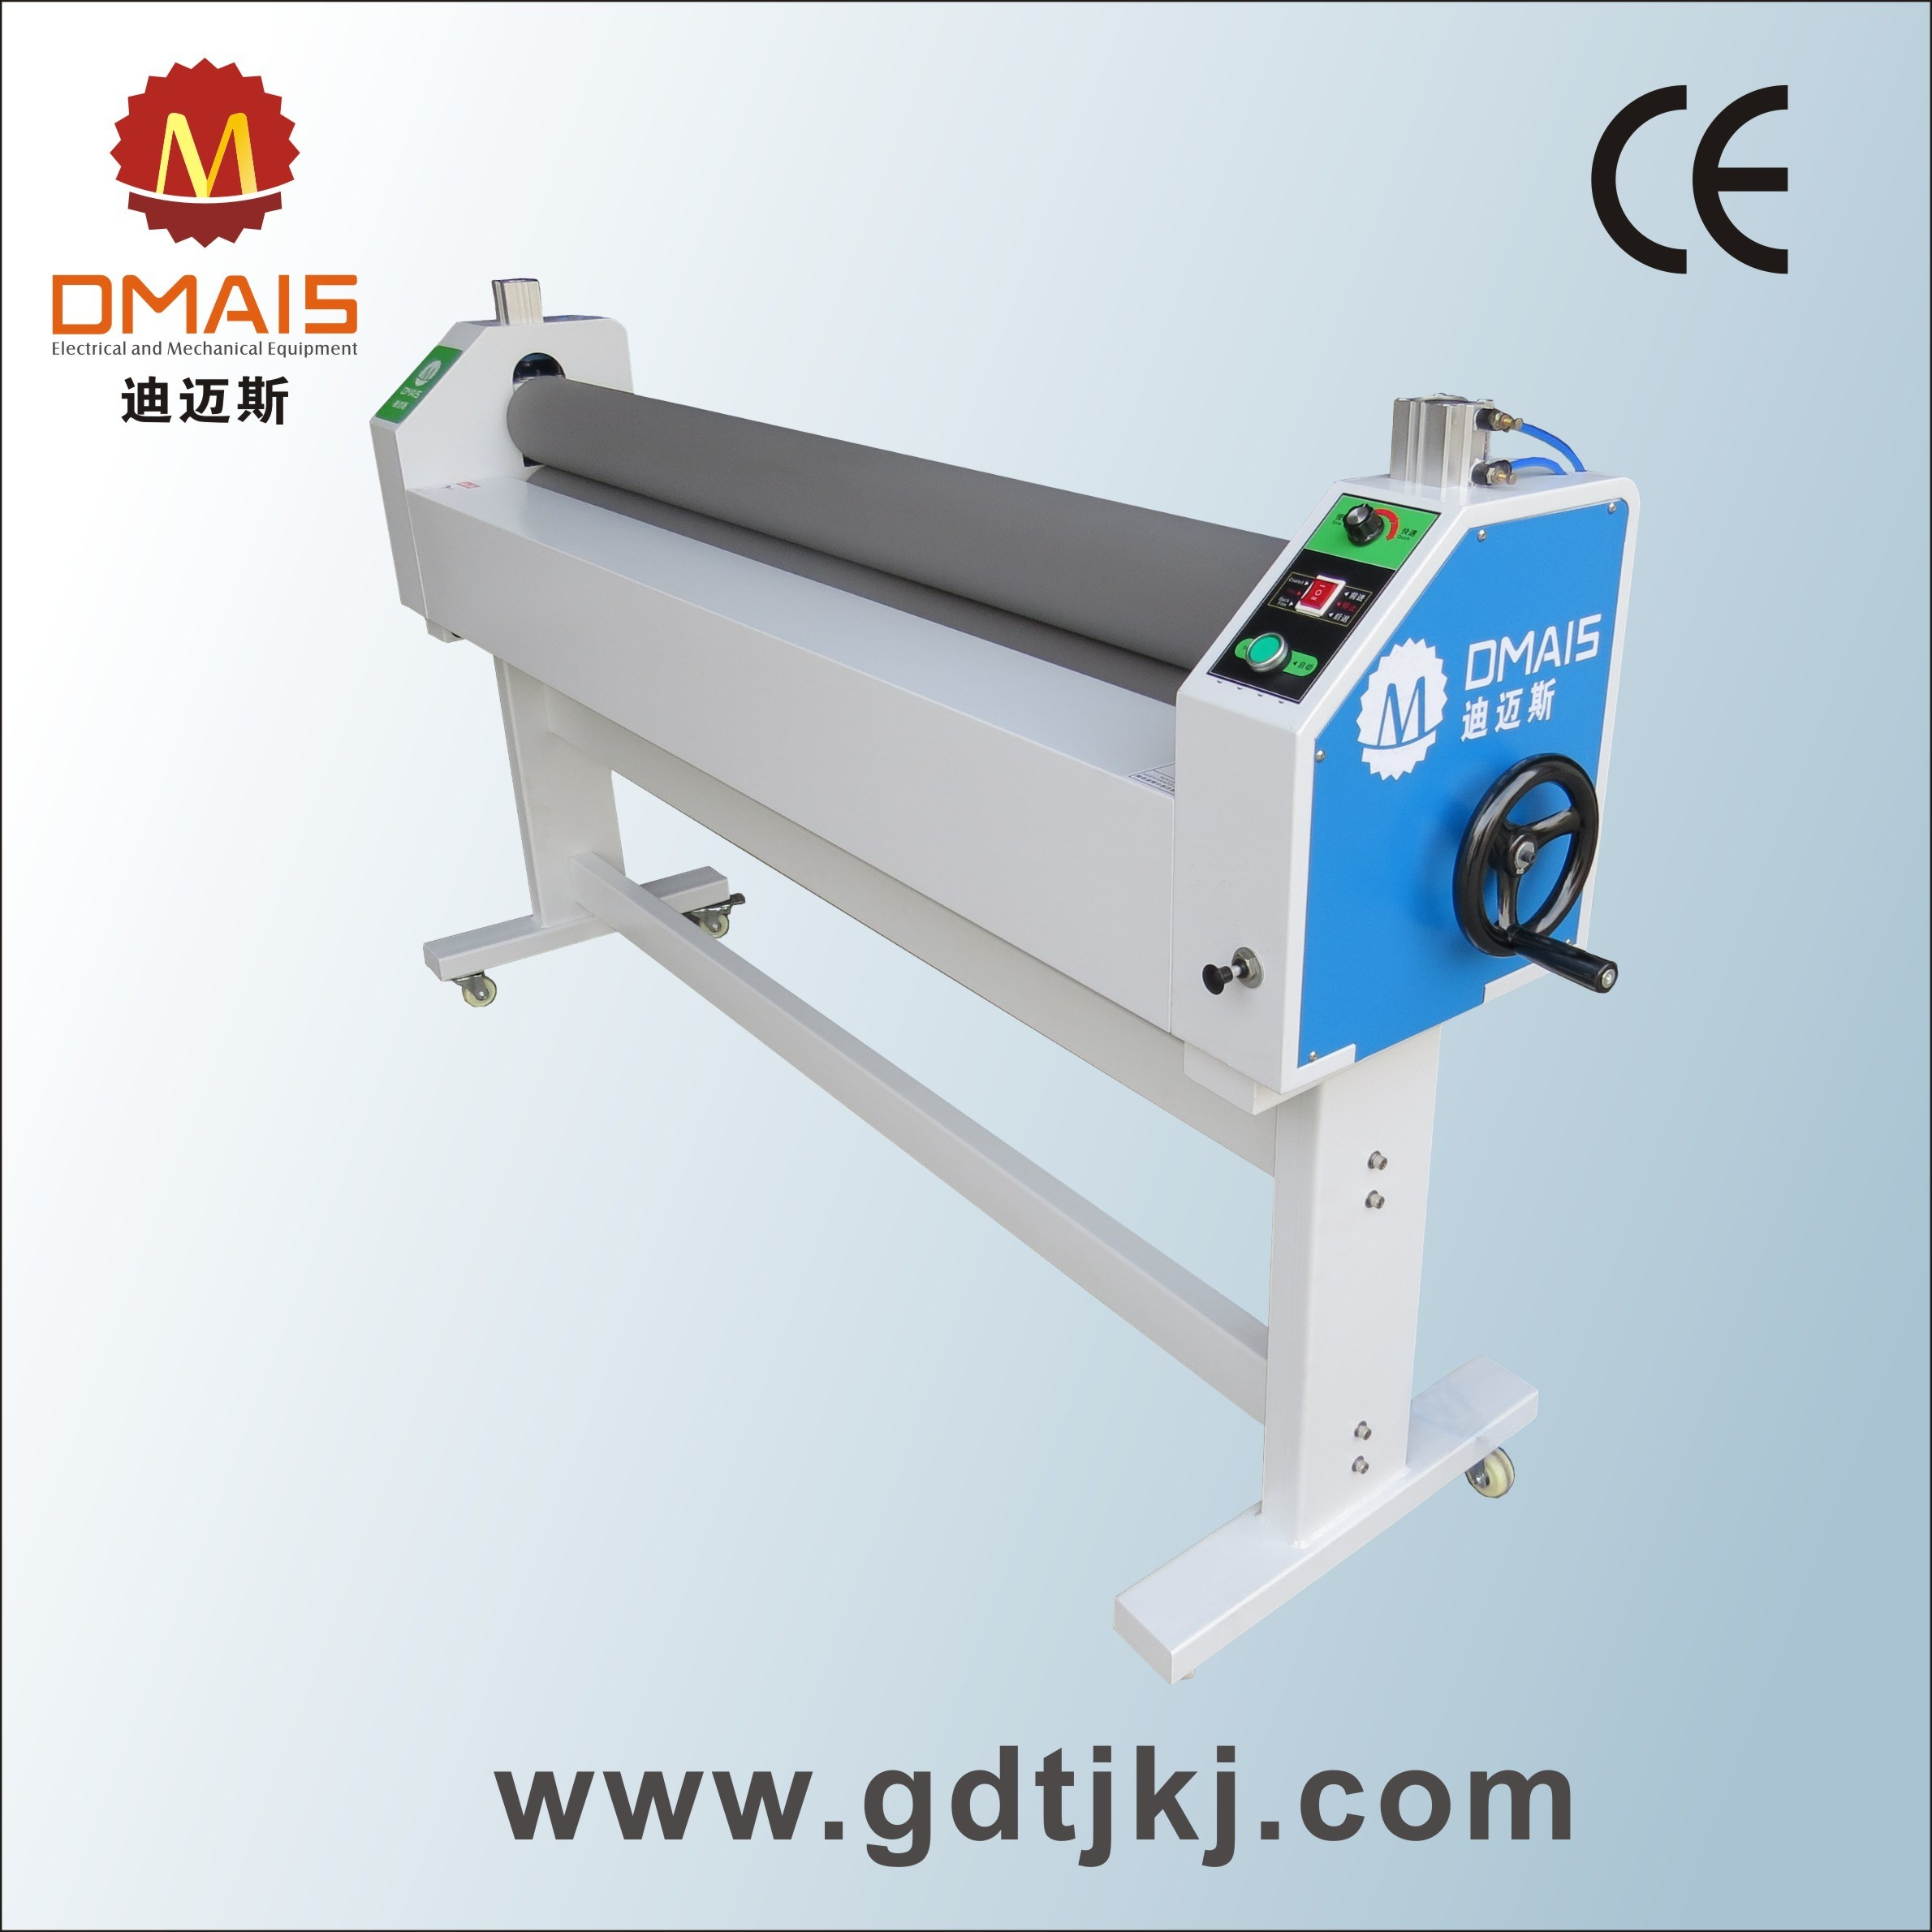 "Dmais 1.6m (63"") Warm Roll Cold Laminator for Manual Lamination"